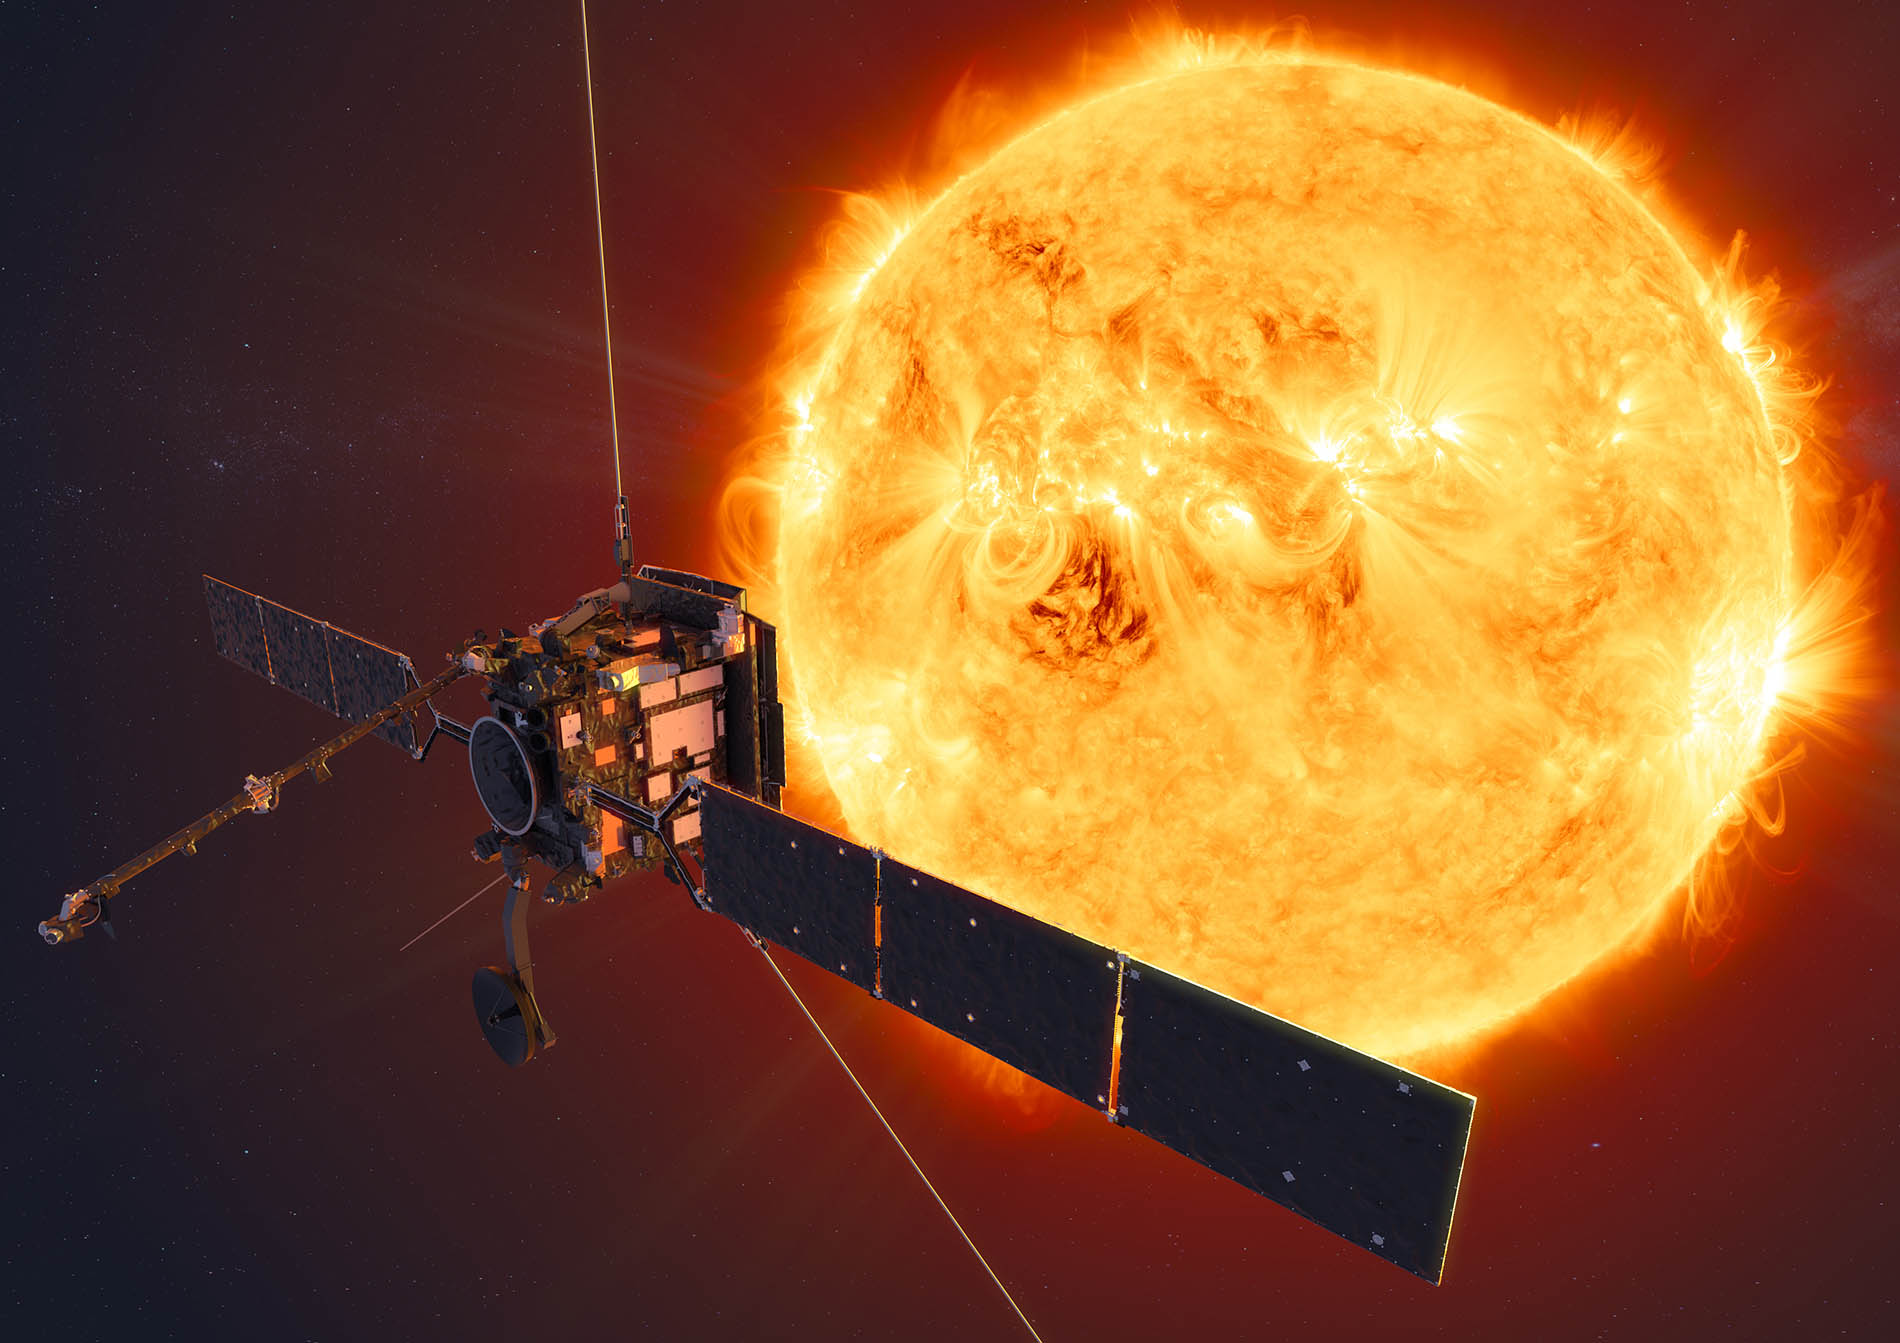 ESAs Solar Orbiter mission will face the Sun from within the orbit of Mercury at its closest approach - Image credit - ESA - ATG medialab